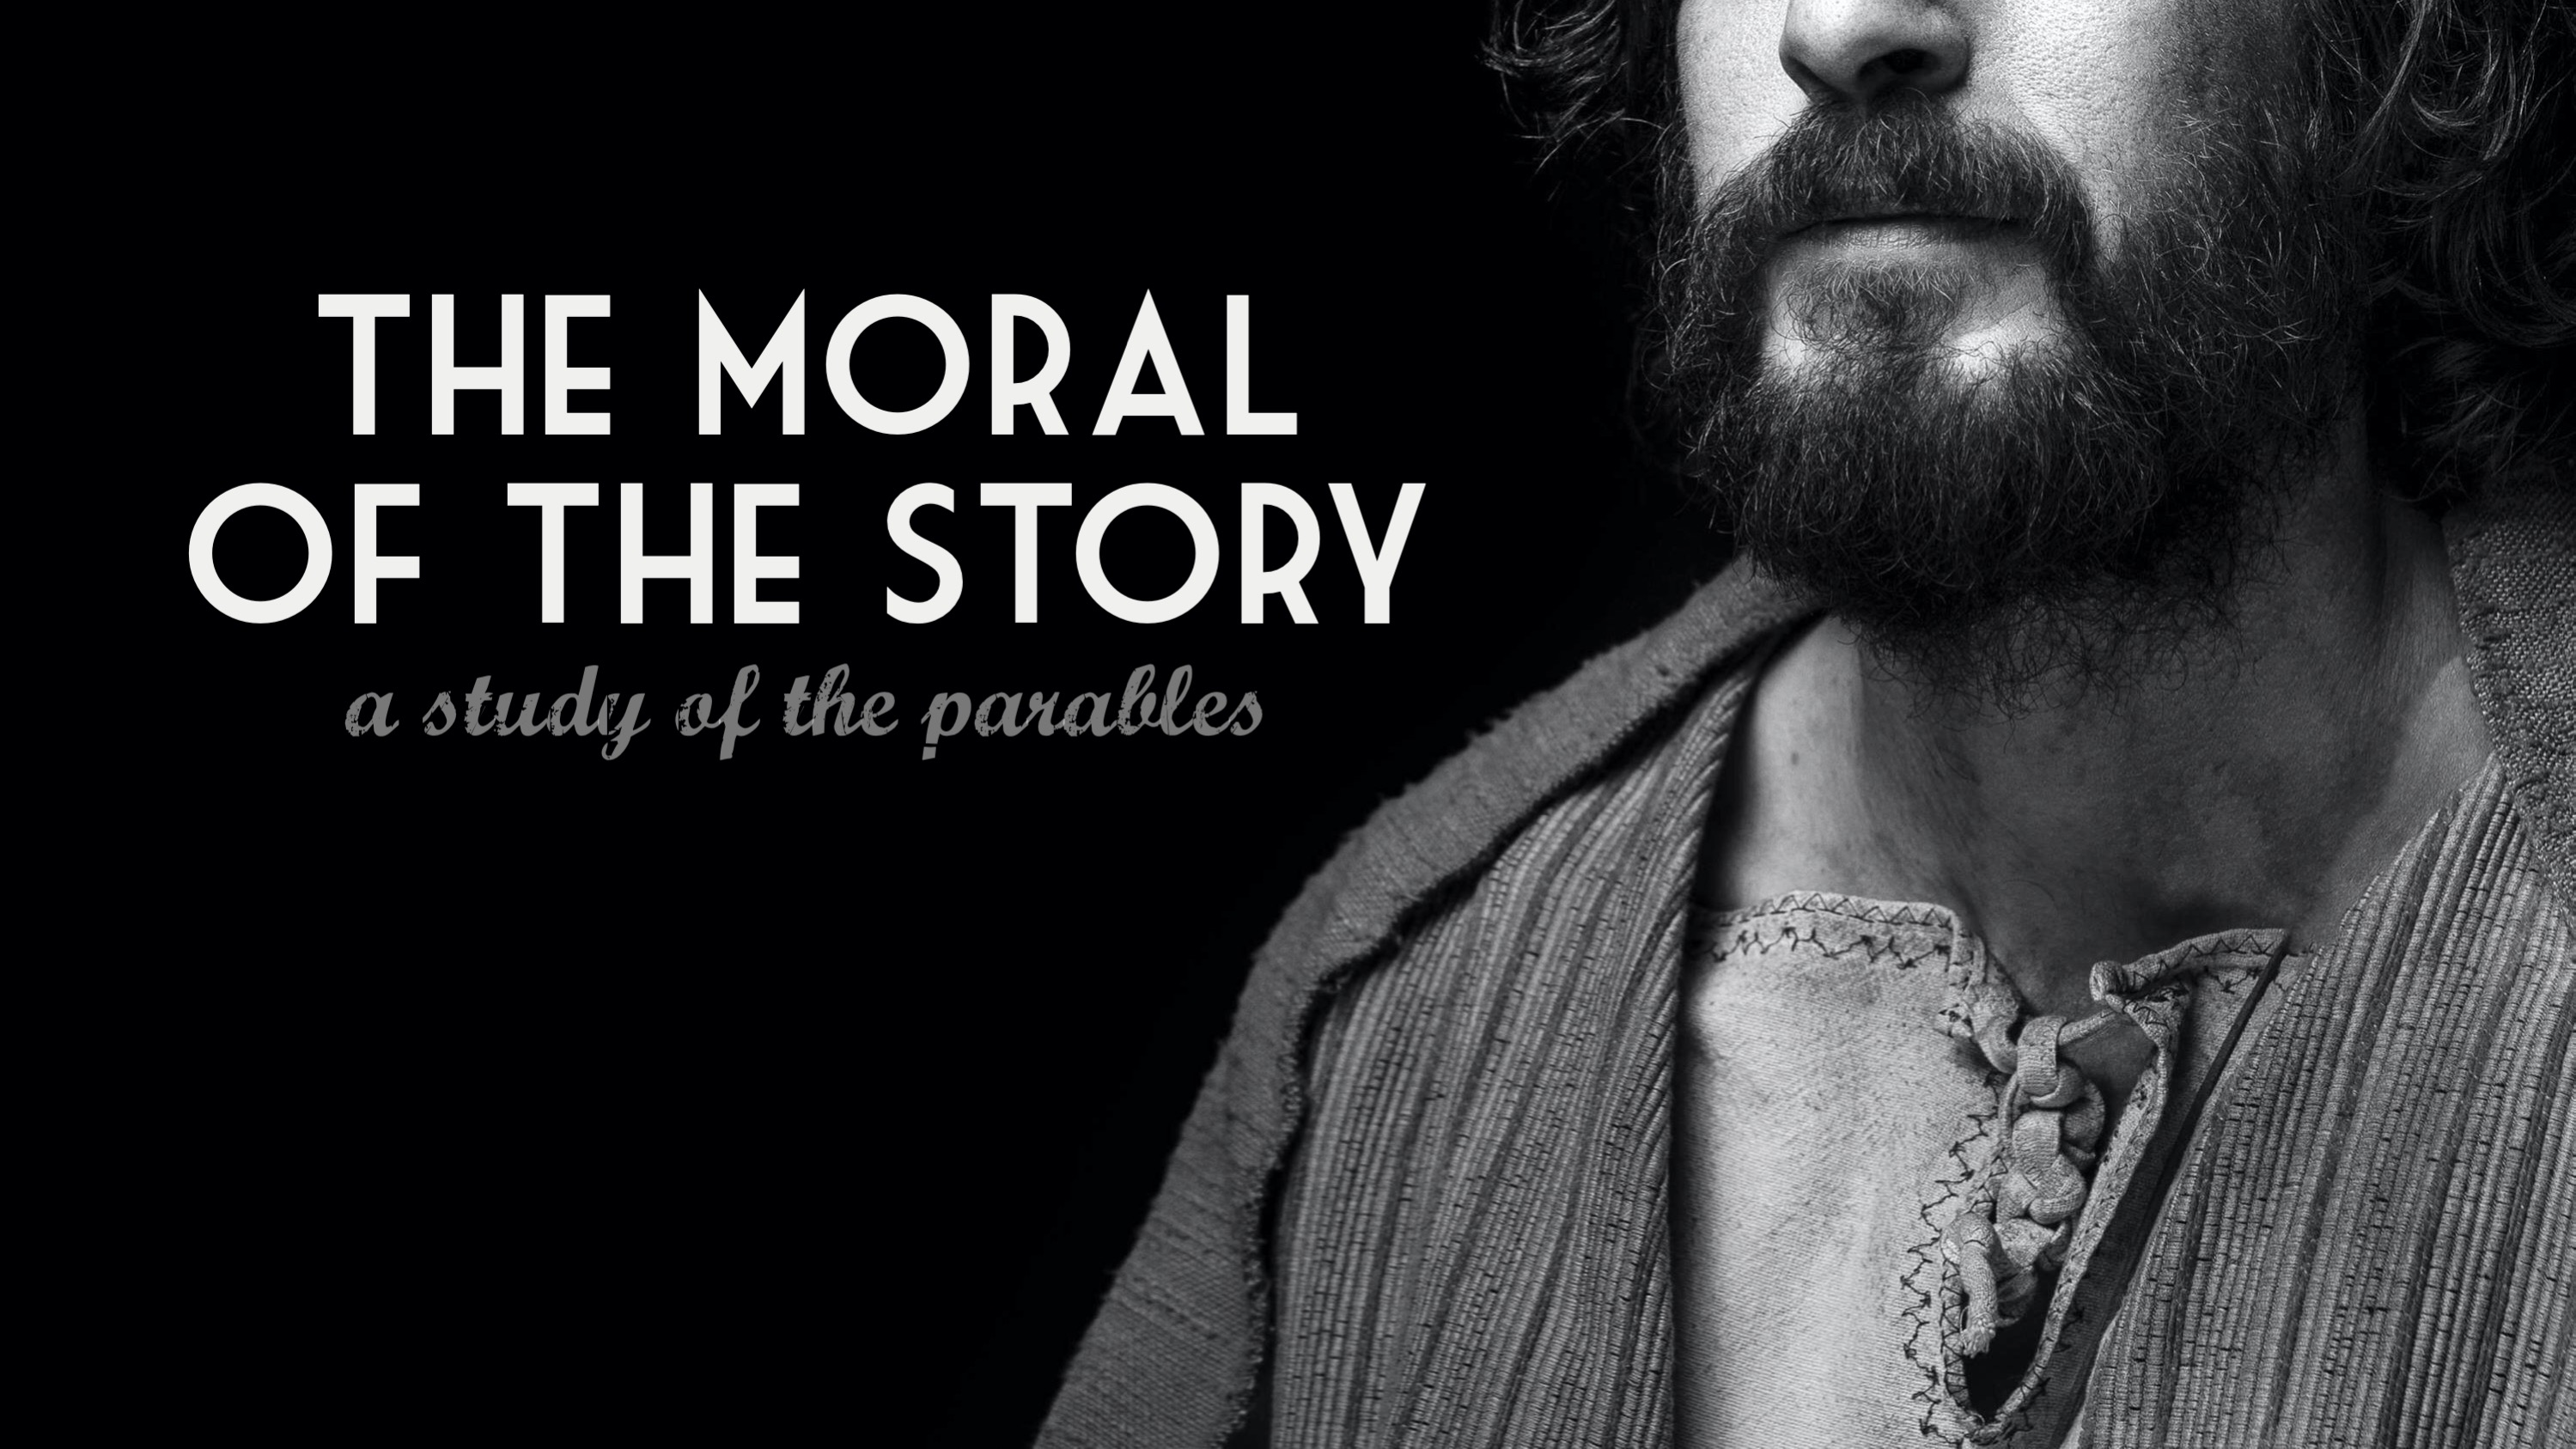 The Moral of the Story: A Study of the Parables